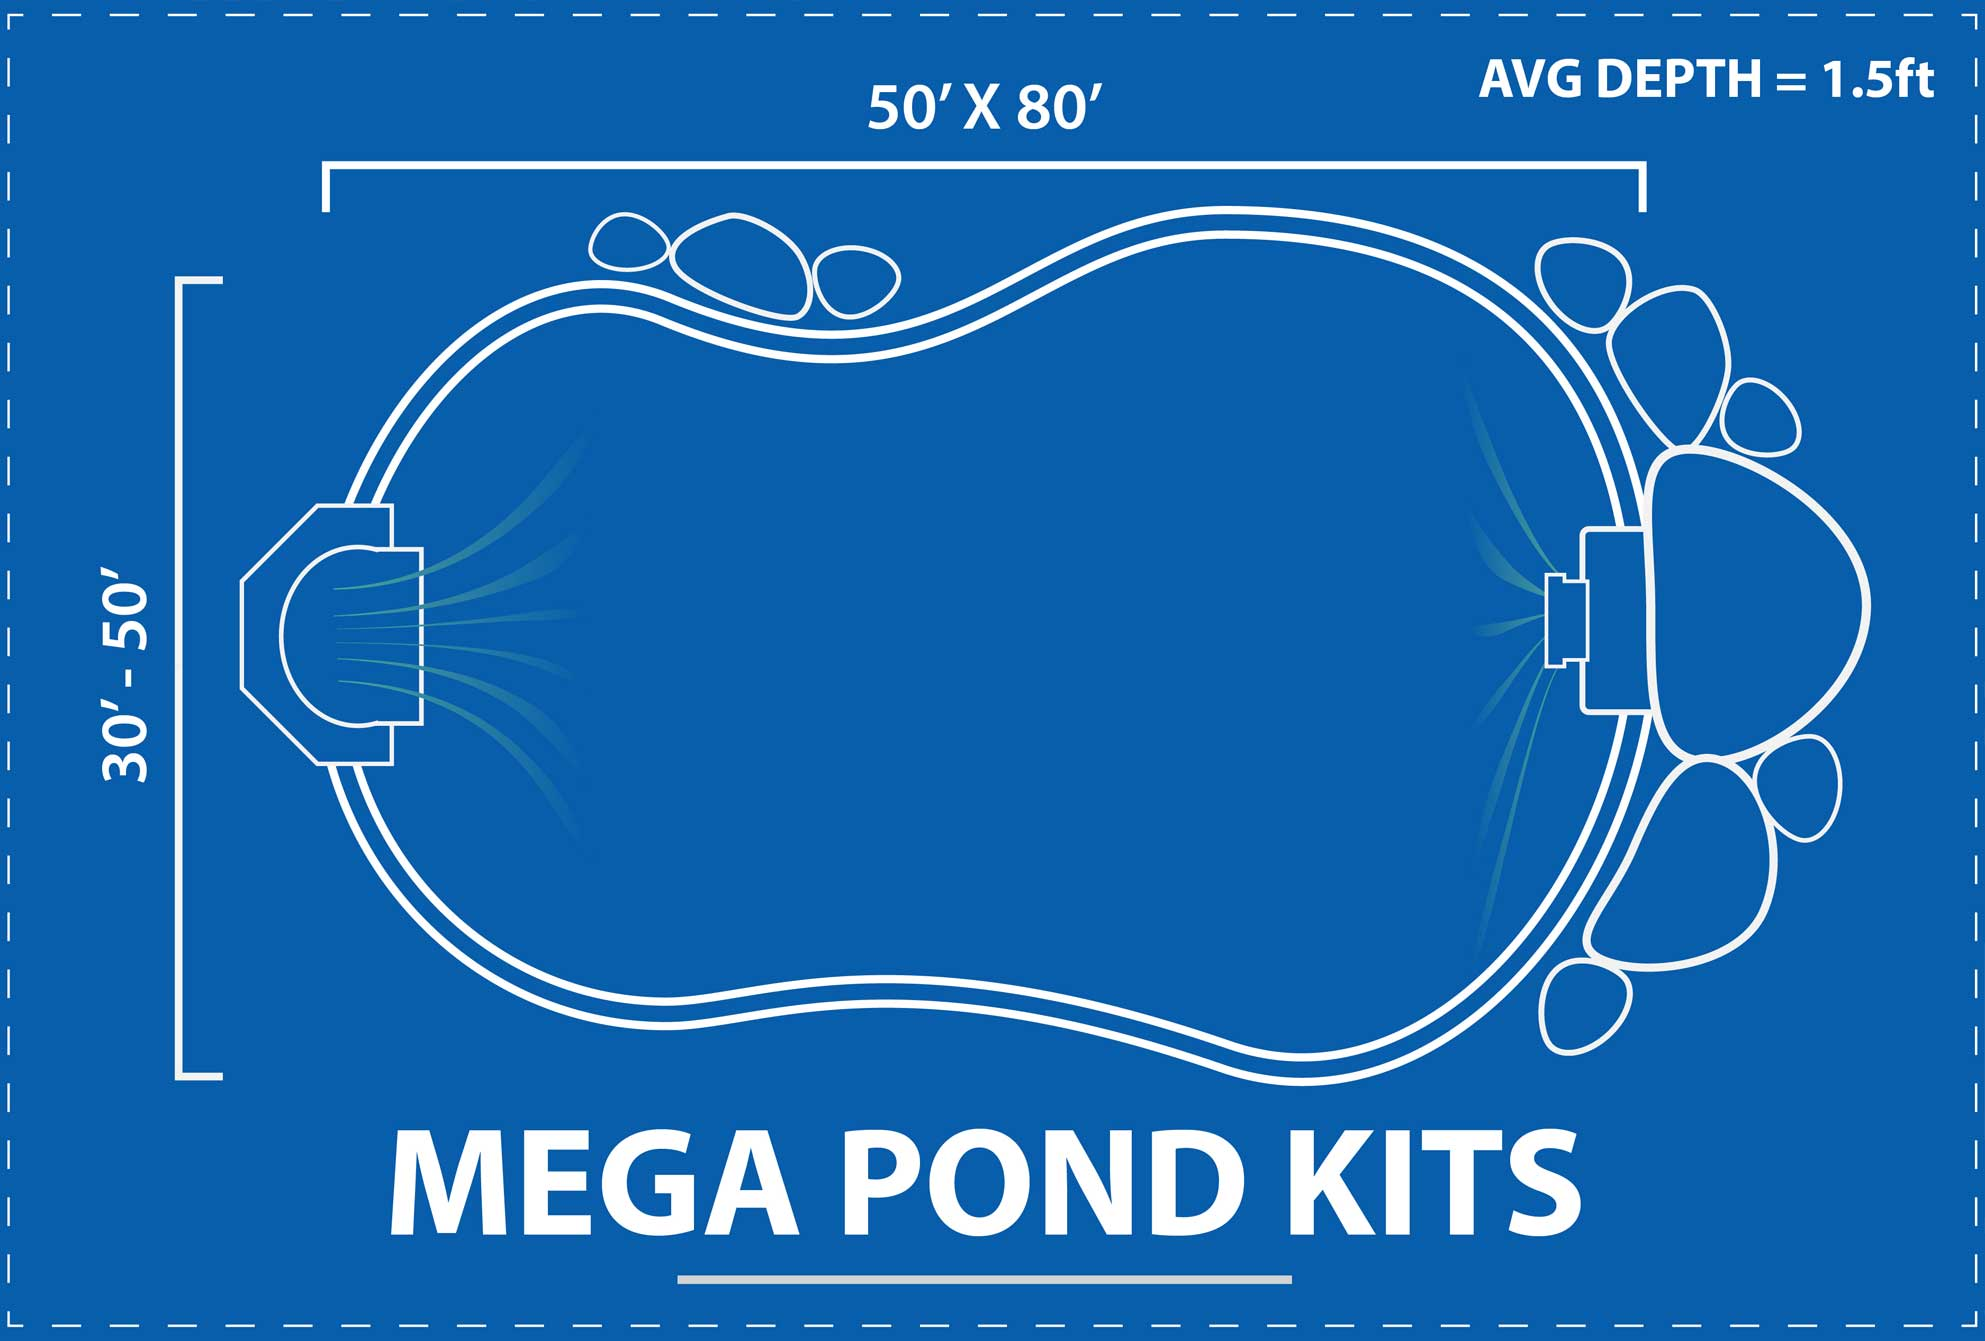 Mega Pond Kits